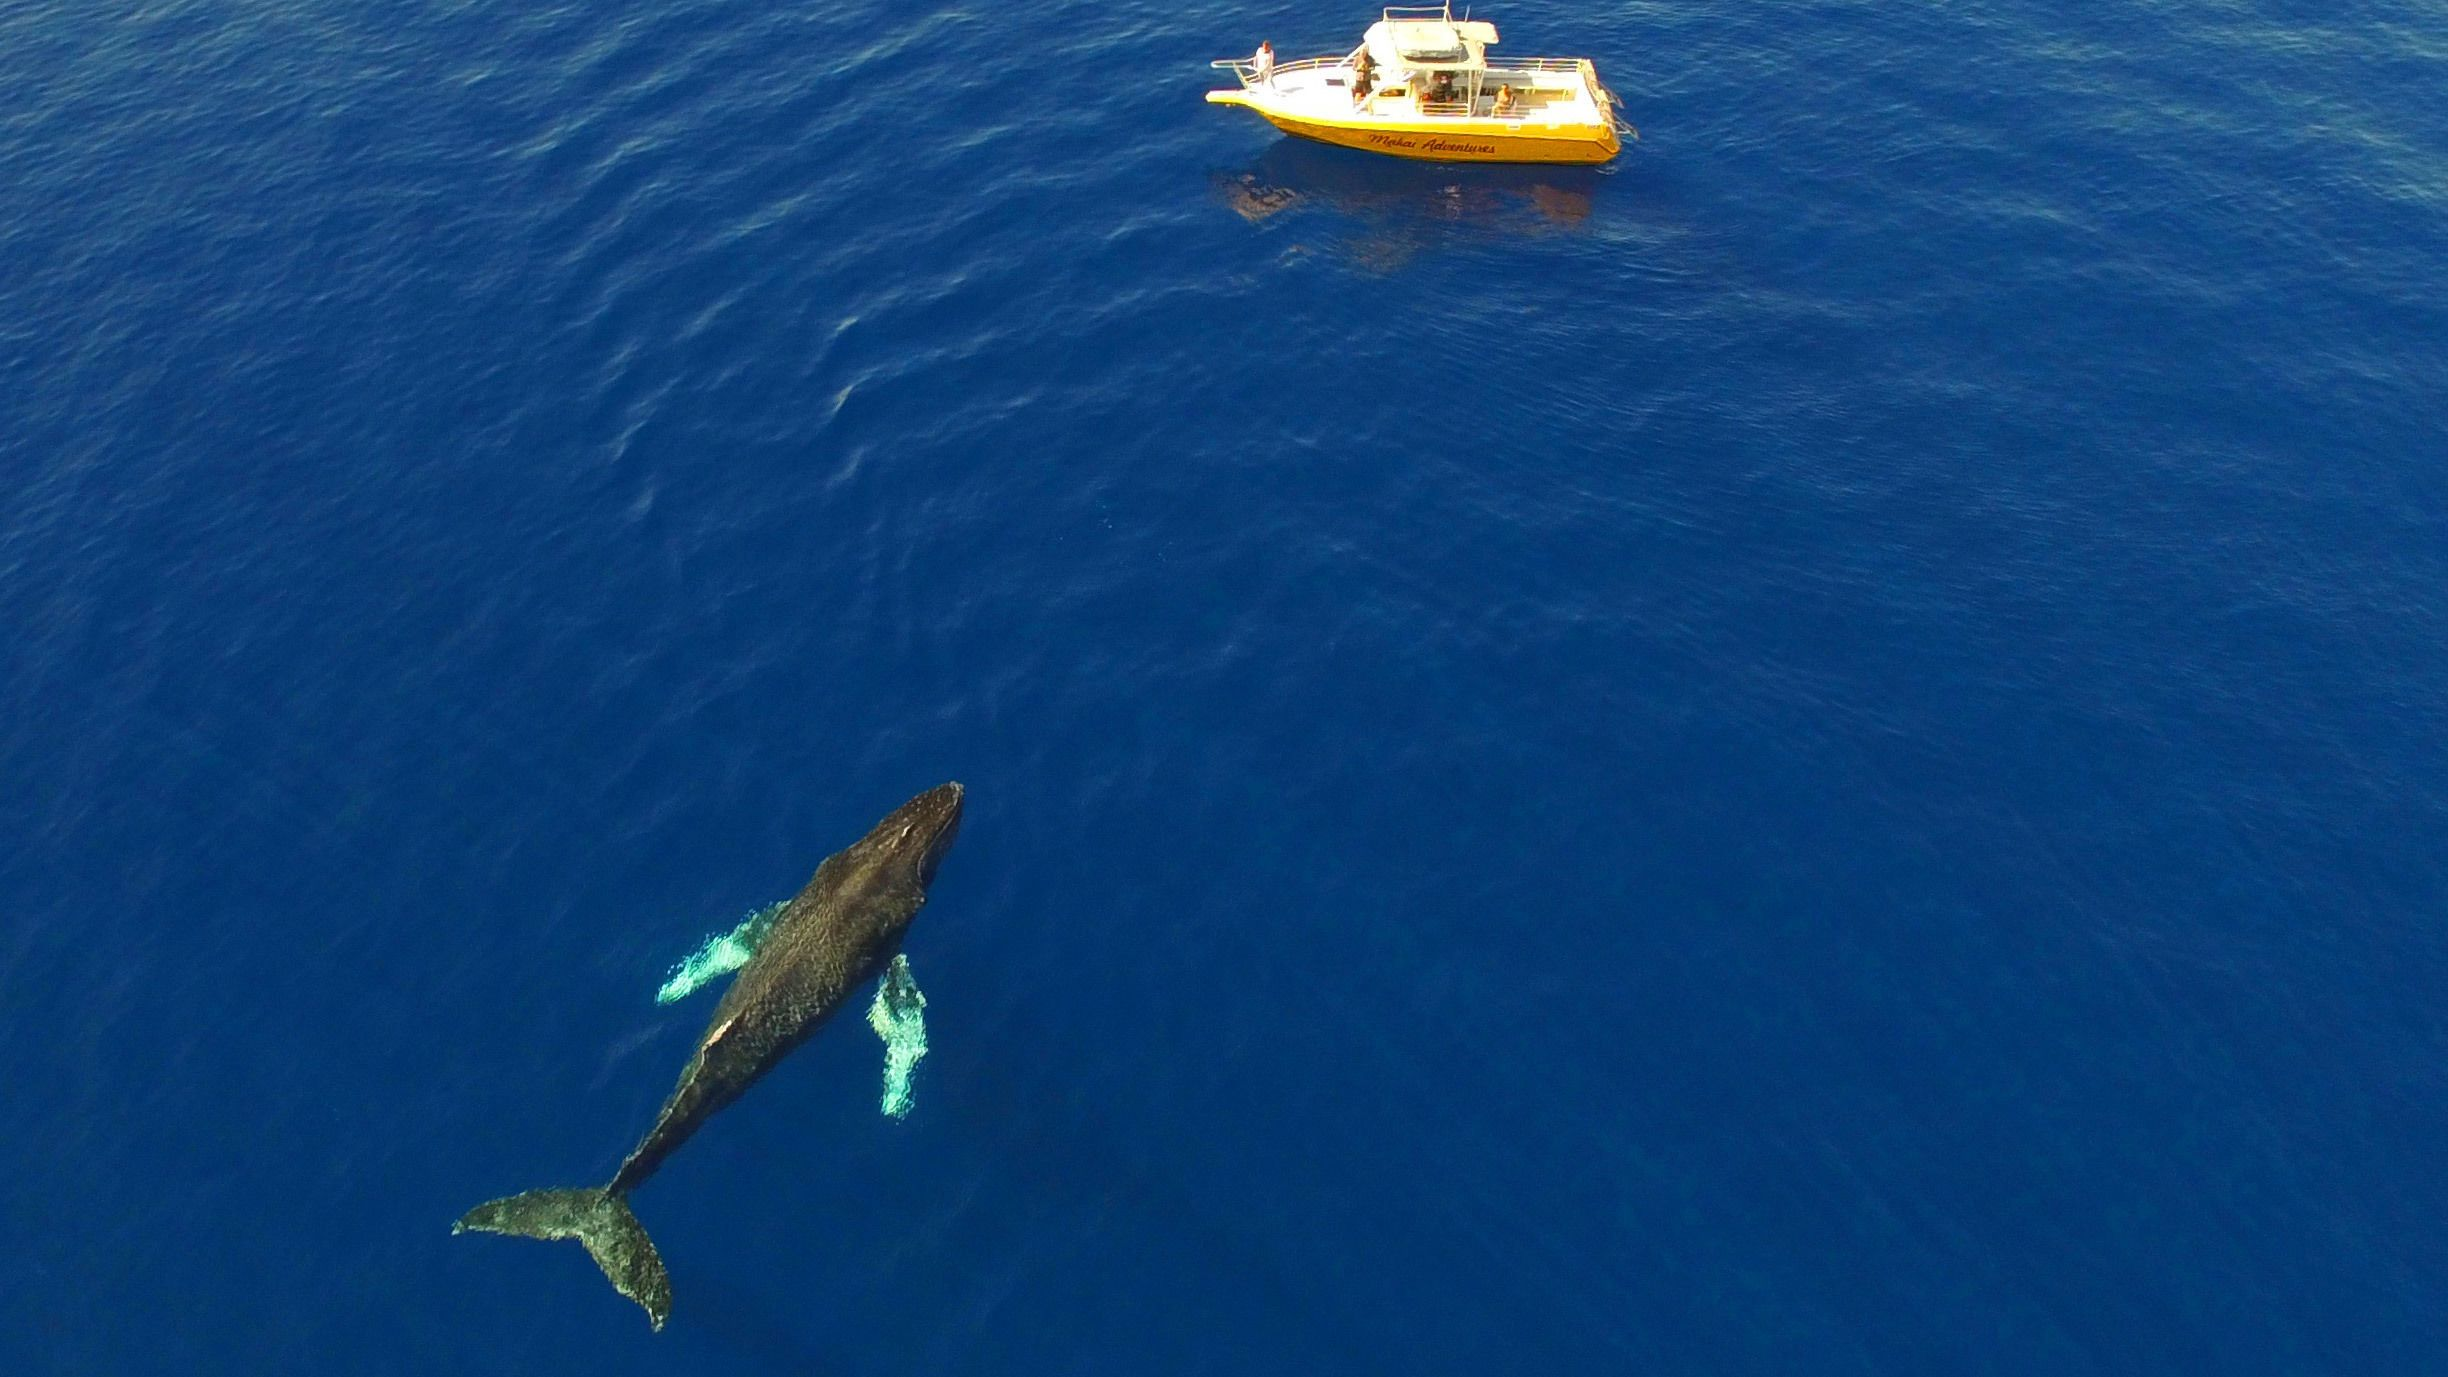 Aerial view of Humpback Whale next to a charter boat